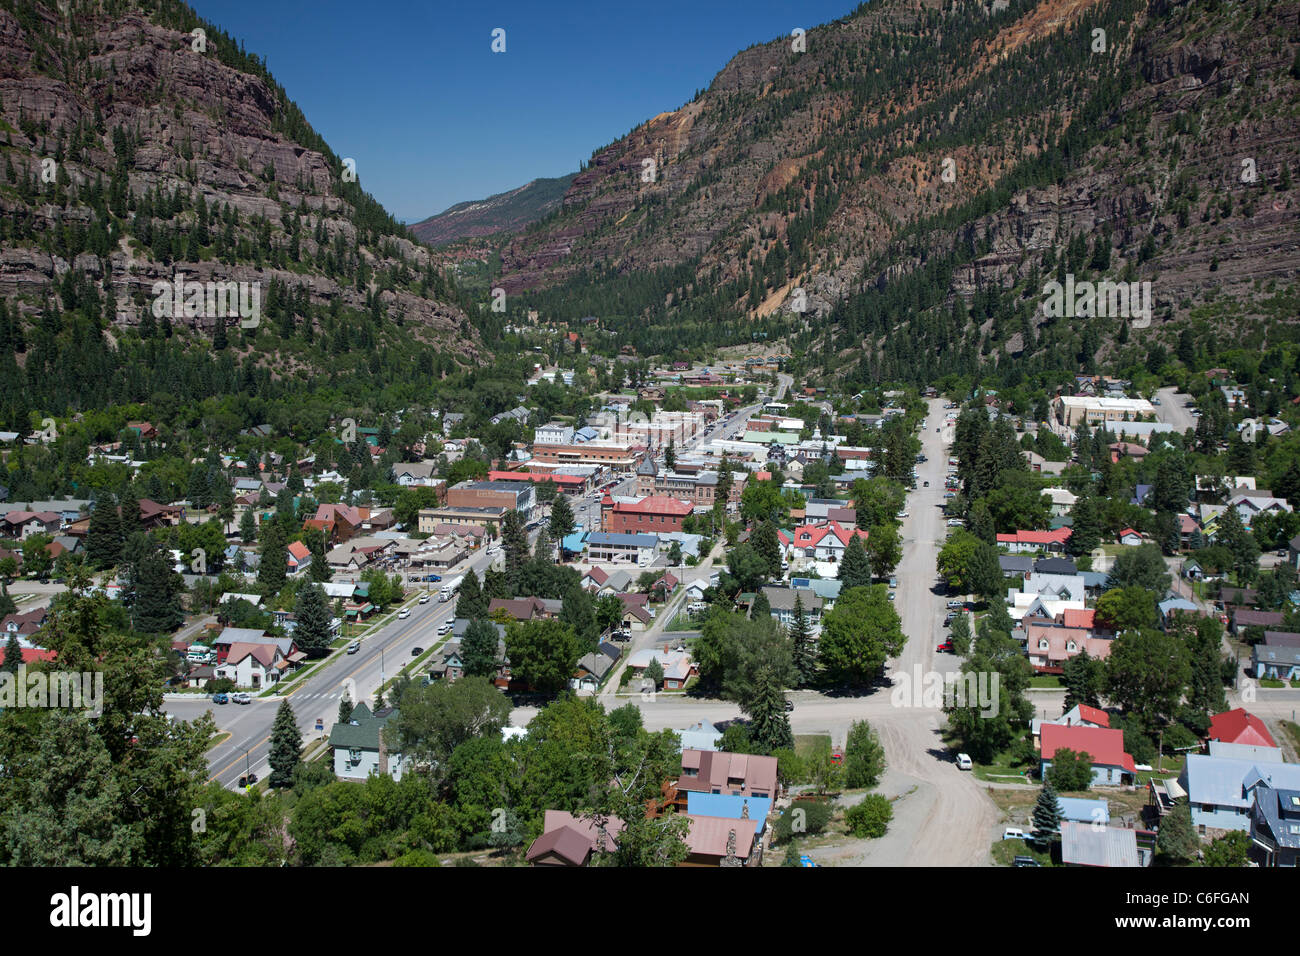 Ouray, Colorado, a former mining town in the San Juan Mountains now supported by tourism. - Stock Image